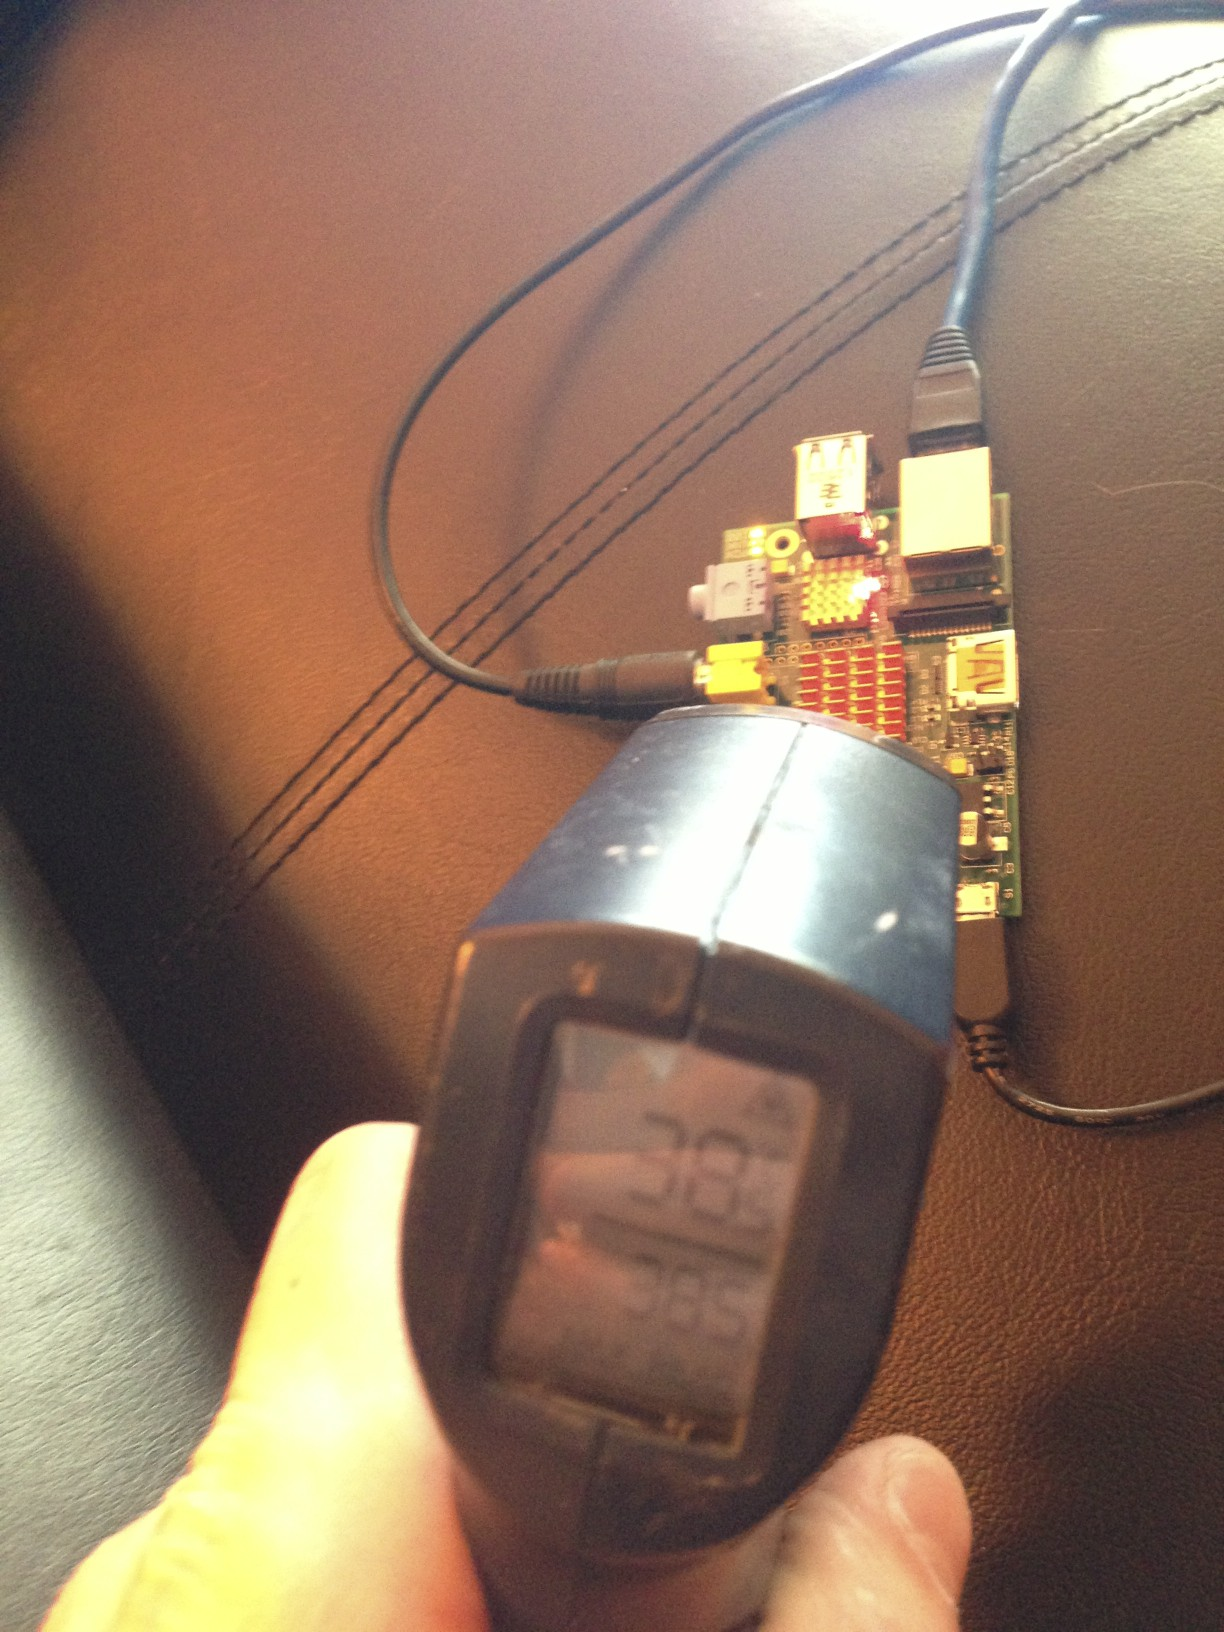 Idle External Temp With Heat Sink